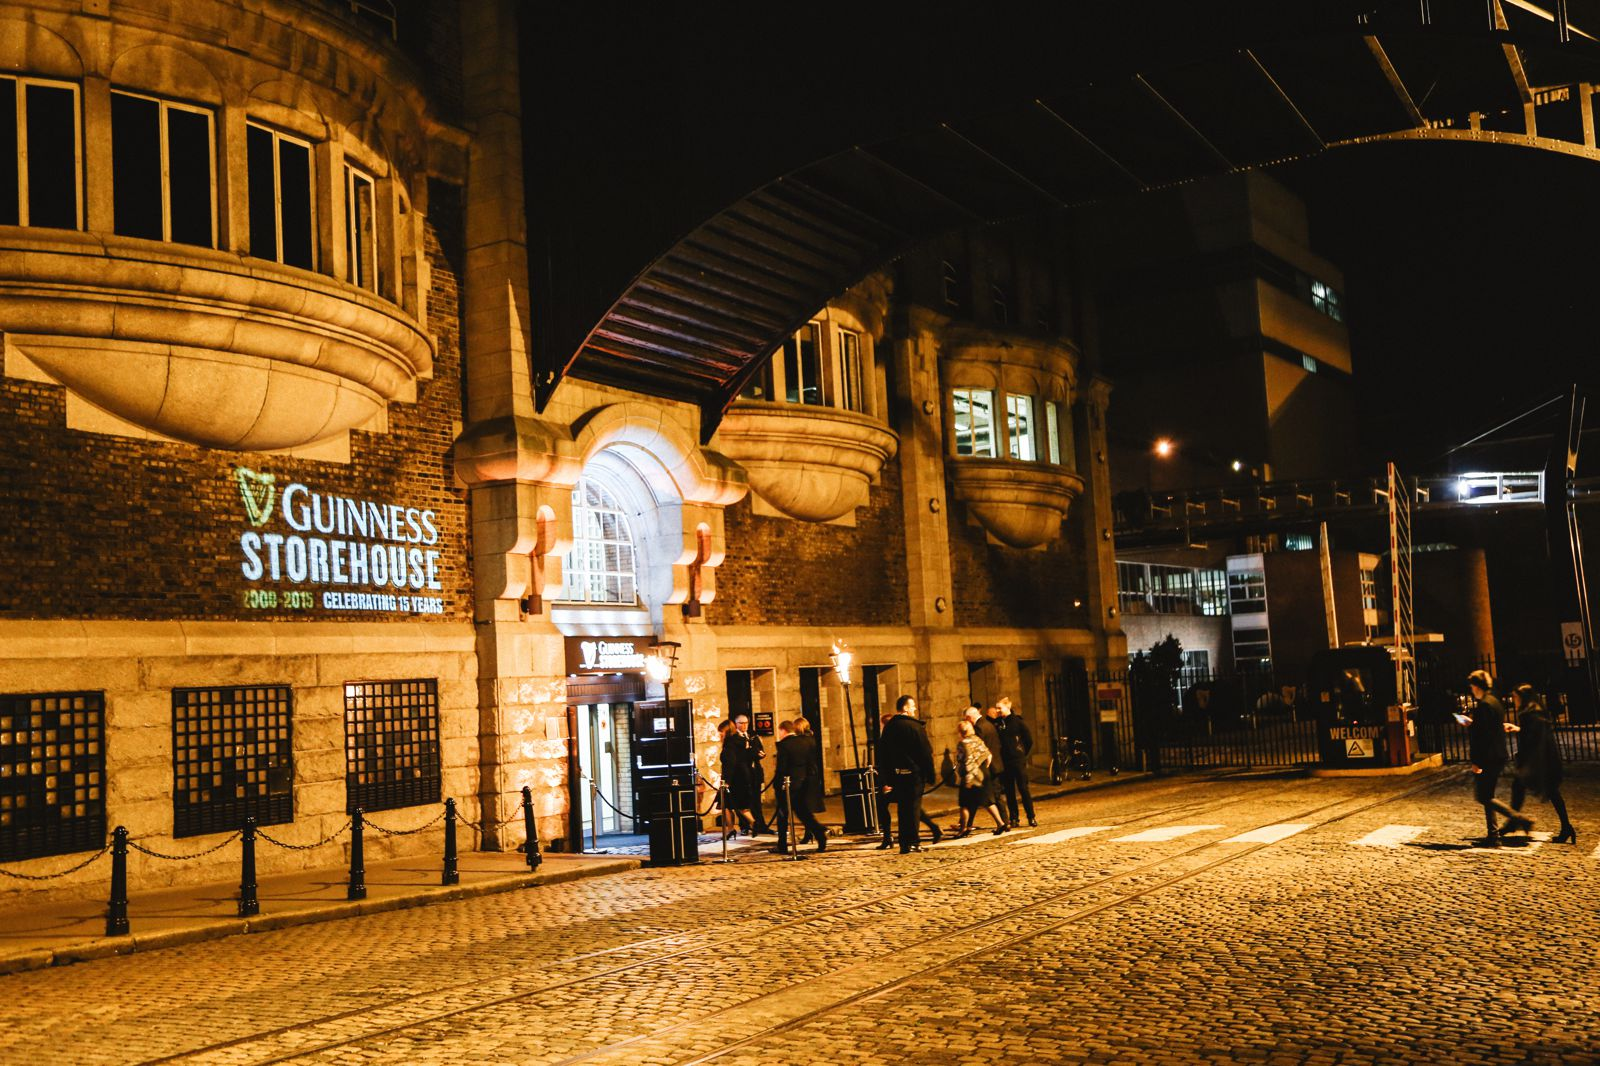 Photo Diary - THAT Irish Party... at The Guinness Storehouse (3)